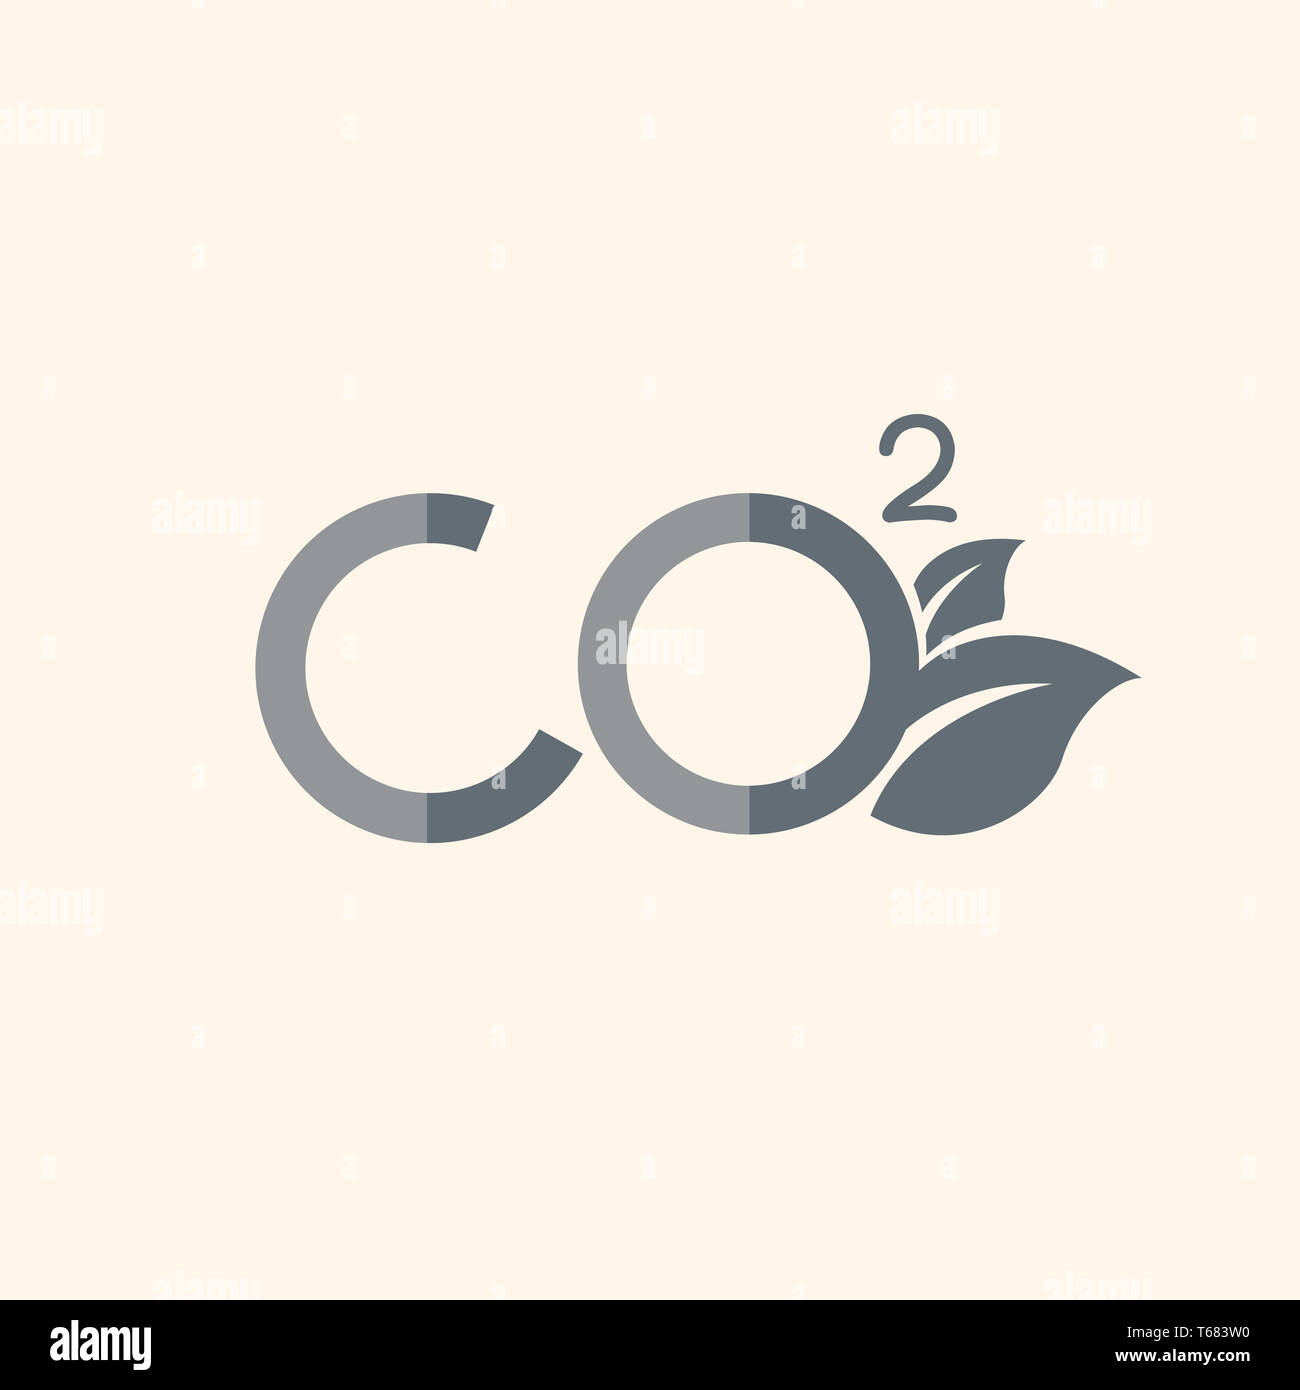 Carbon Dioxide Flat Icon - Stock Image